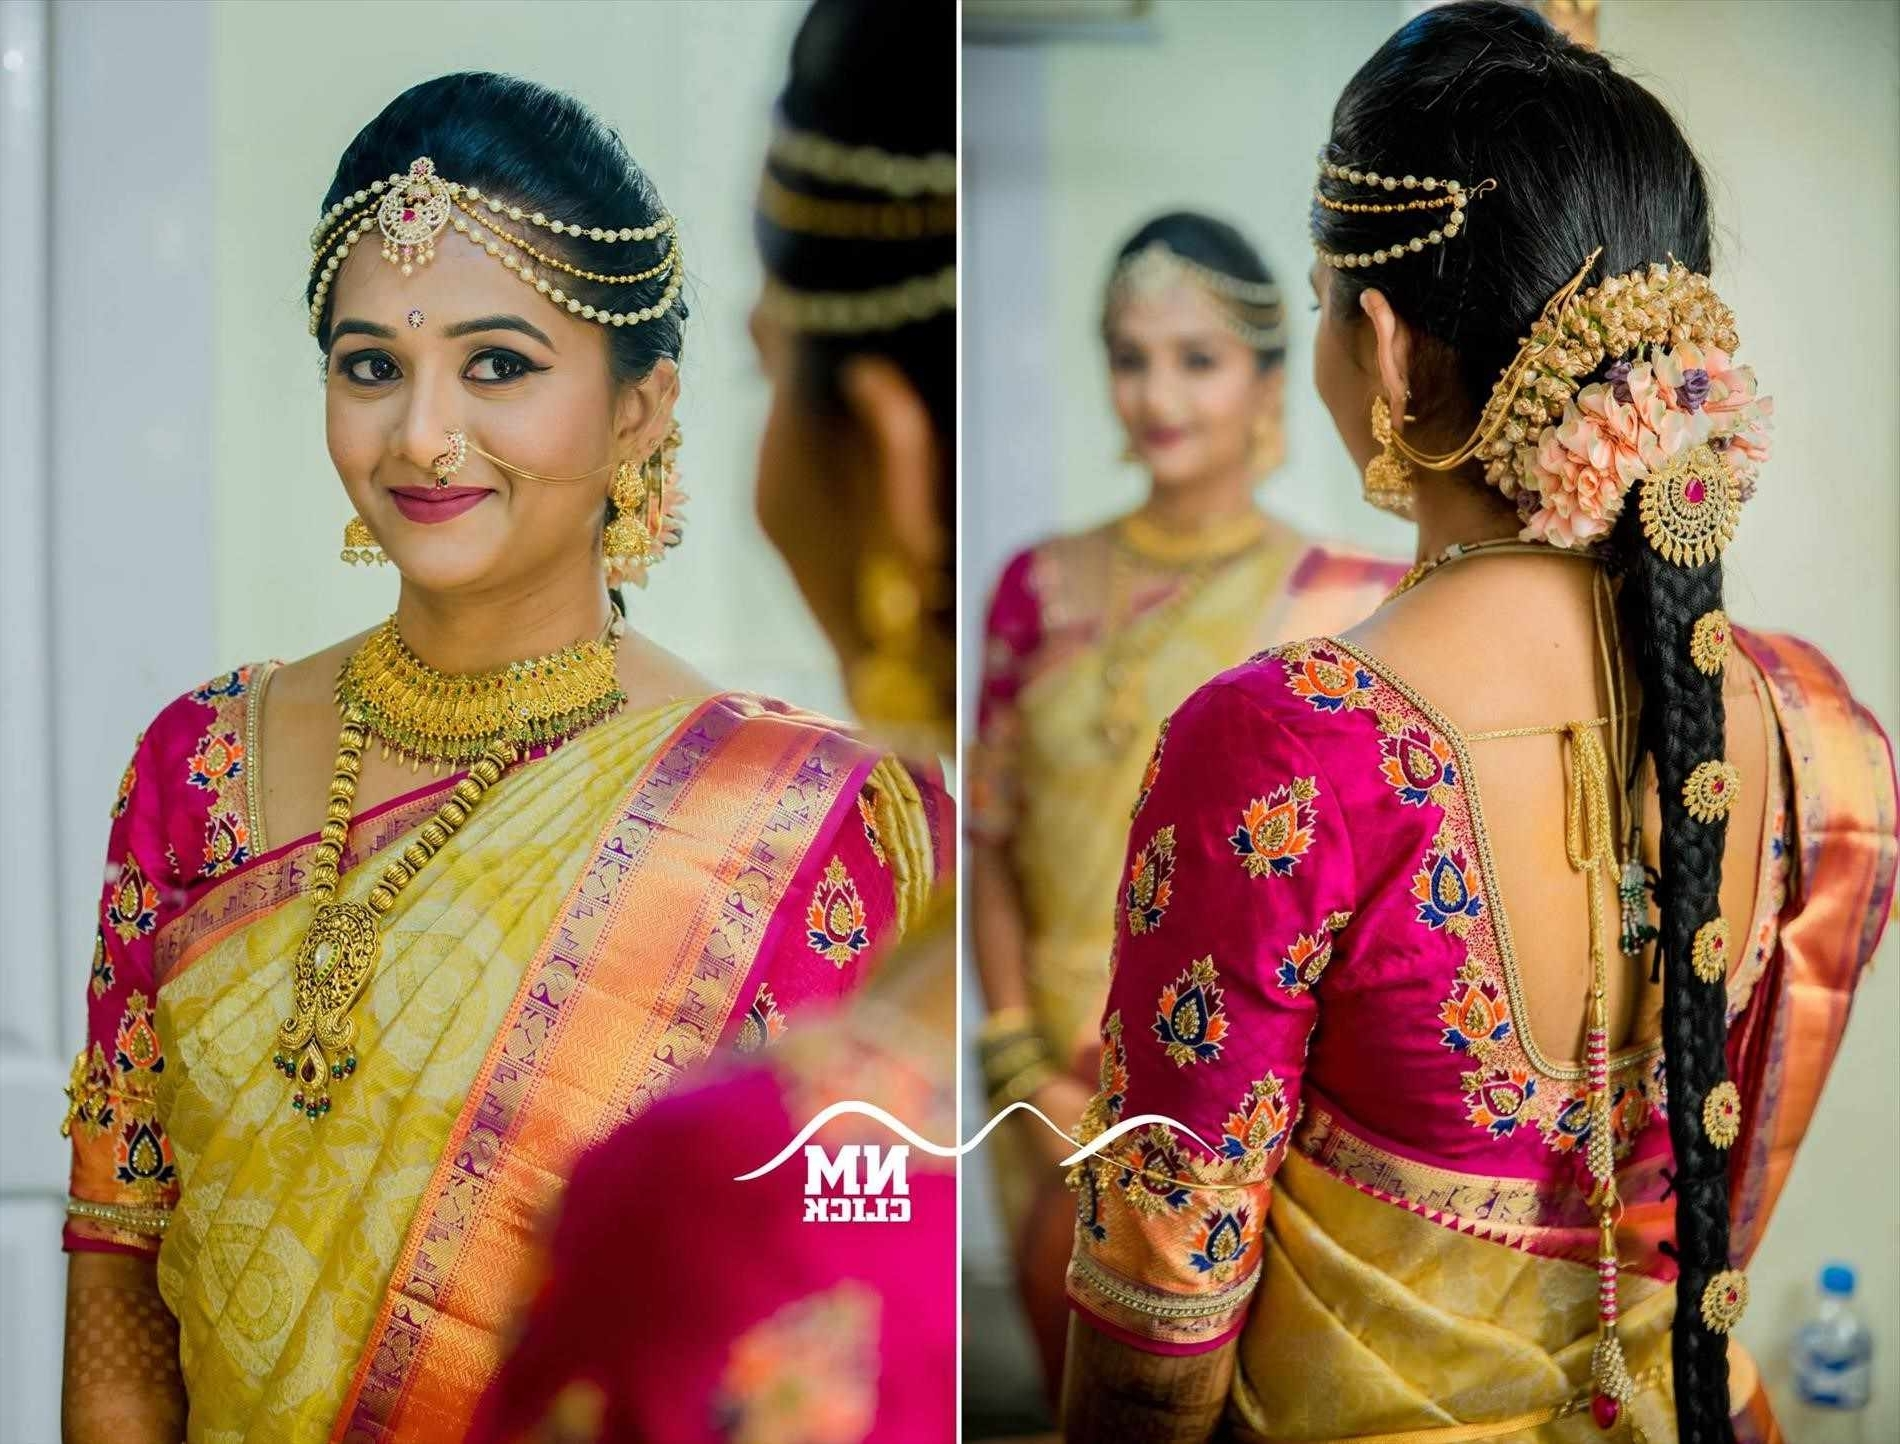 Most Current South Indian Tamil Bridal Wedding Hairstyles Regarding Bunch Ideas Of Tamil Bridal Hairstyles Epic Tamil Wedding Hairstyles (View 4 of 15)